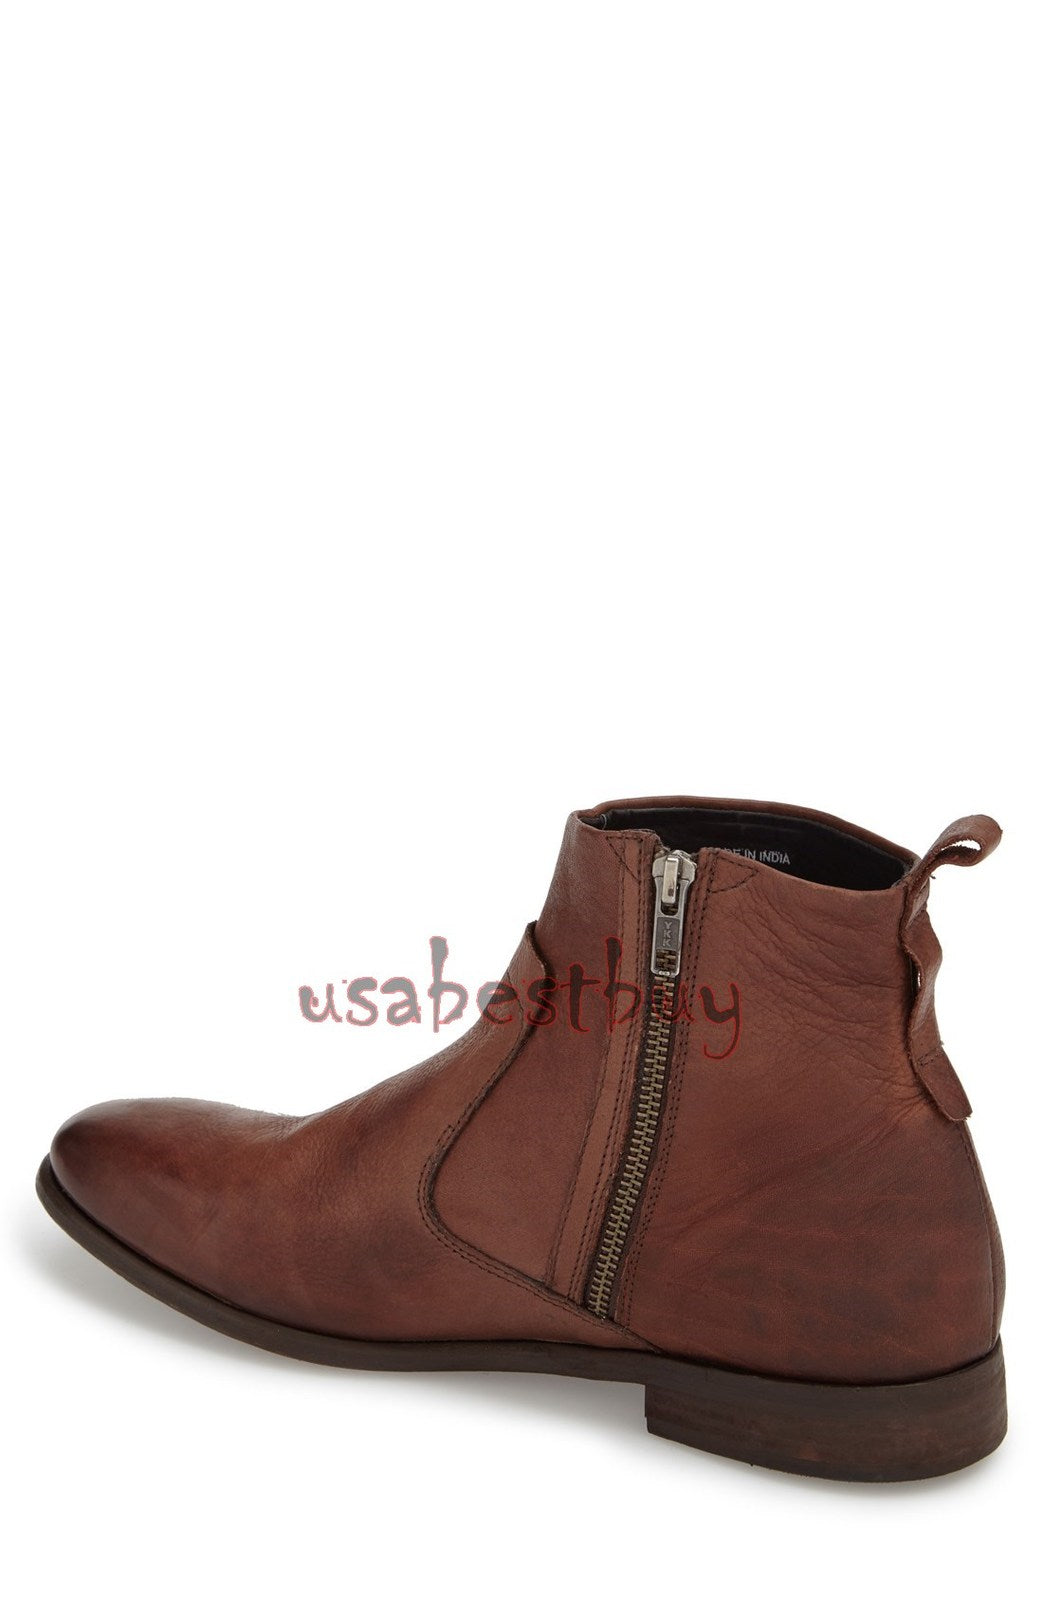 New Handmade Latest Style Real Leather Ankle Boots with Simple Toe and Zipper